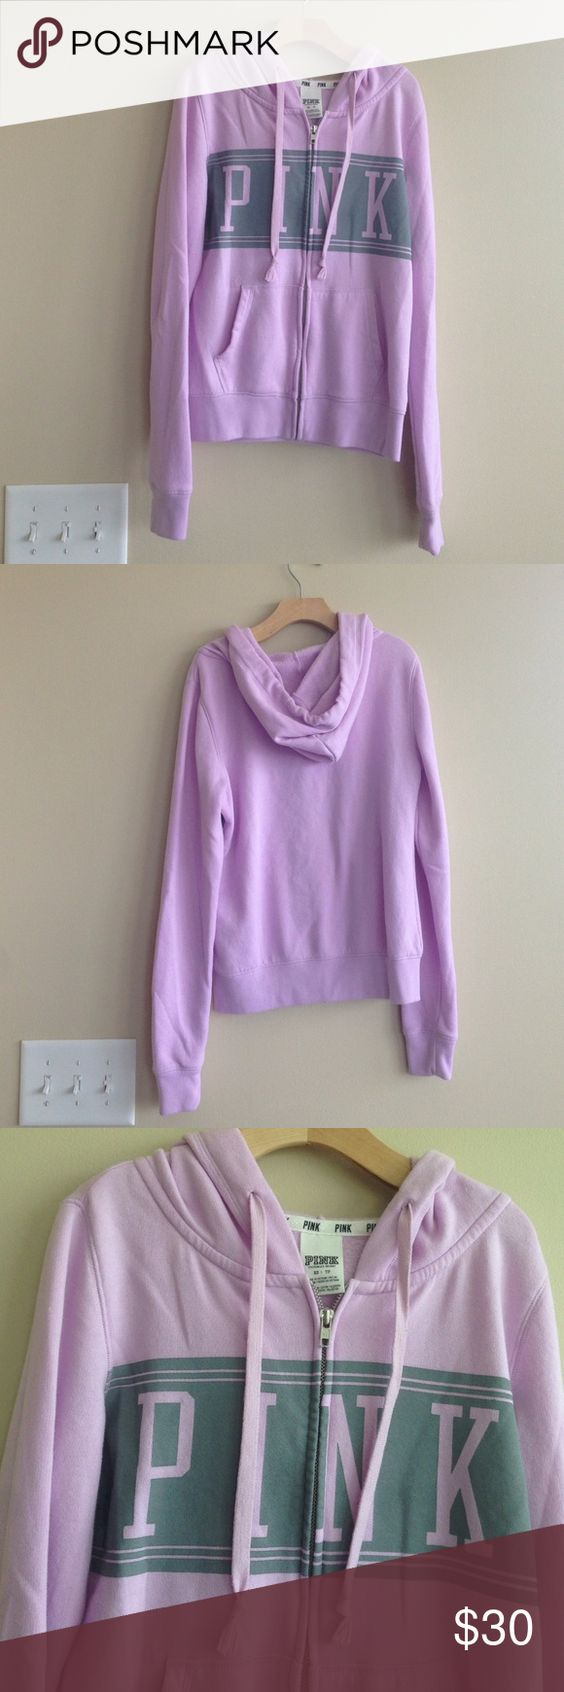 VIctoria's Secret PINK Light Purple Hoodie XS Victoria Secret PINK Light Purple Hoodie. Light Gray Band on Front with Light Purple PINK across Chest. Super Cute and Super Soft. Only worn a couple of times. In great condition no tears, stains, etc. Xs! Normal wash wear including light piling on sleeves and underarms. PINK Victoria's Secret Tops Sweatshirts & Hoodies